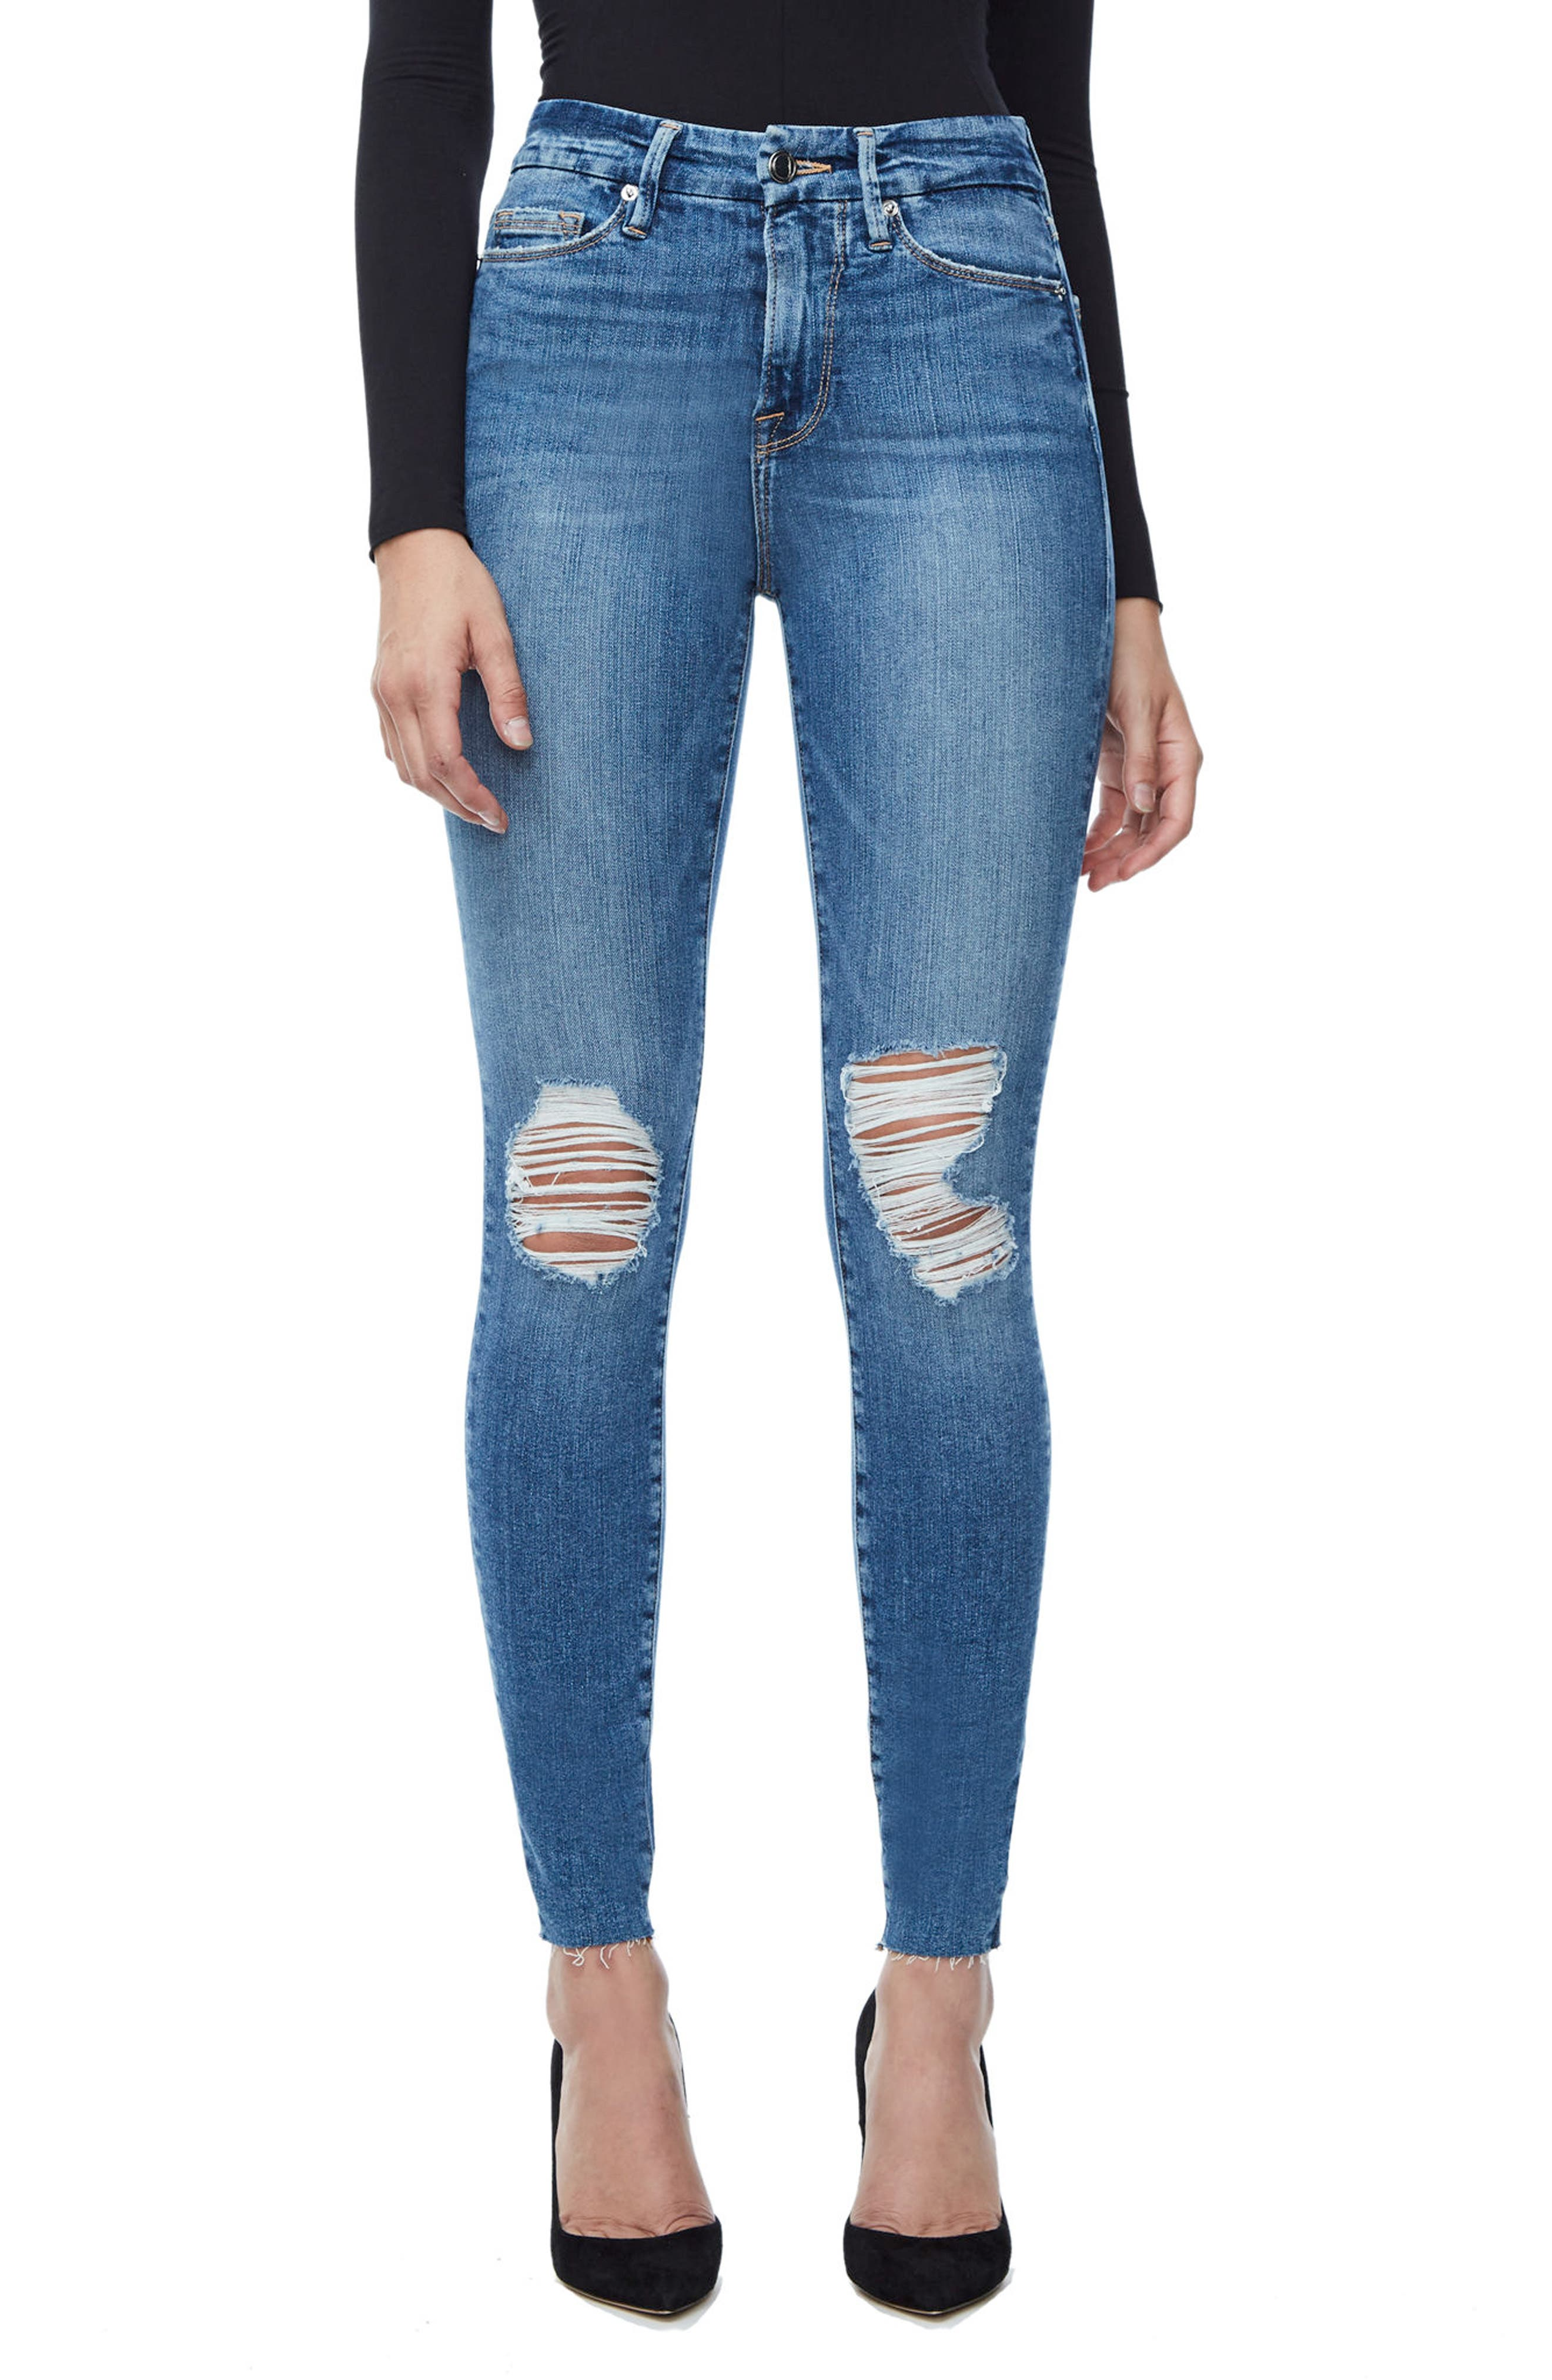 Main Image - Good American Good Waist Raw Edge Skinny Jeans (Blue 092) (Extended Sizes)